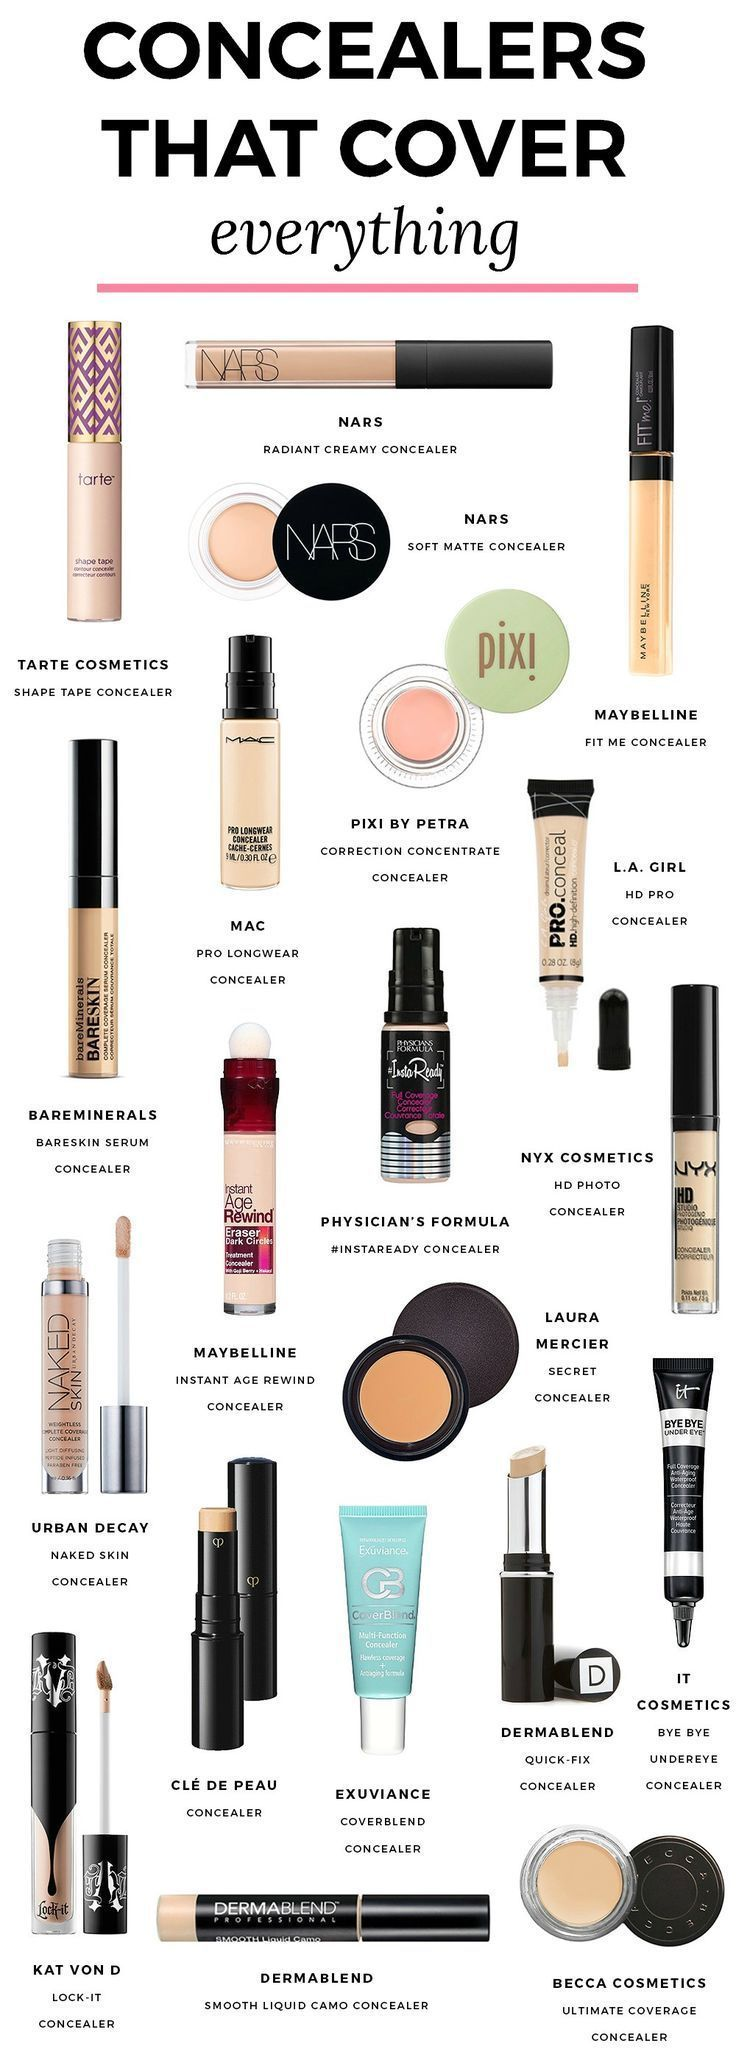 Best Concealer 2020.Concealers That Cover Everything The Best Concealers For